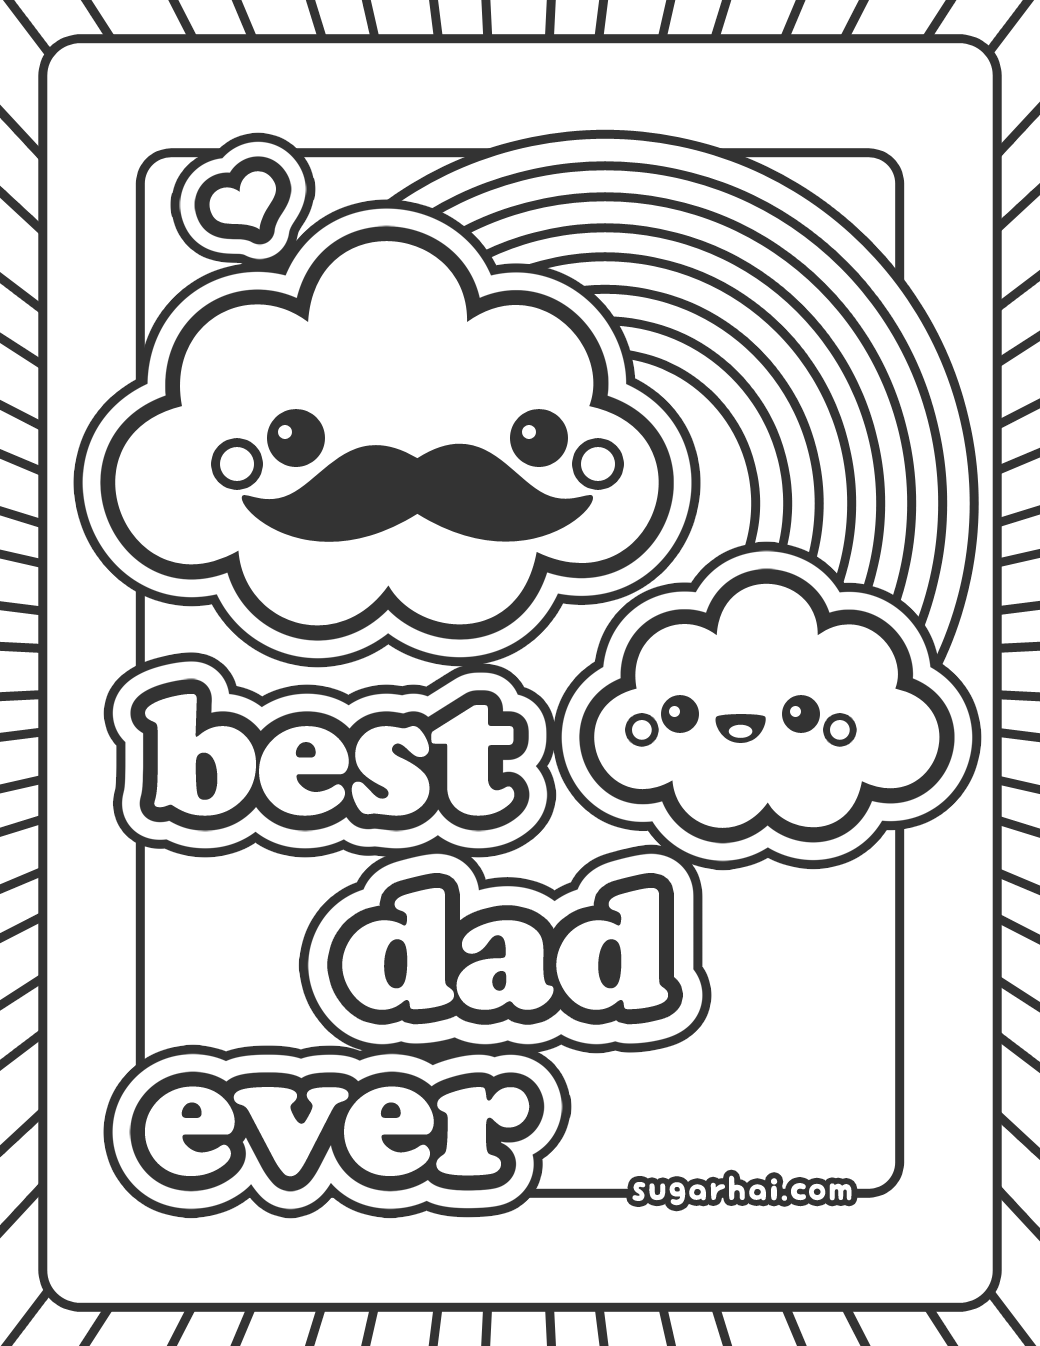 cute best dad ever coloring page